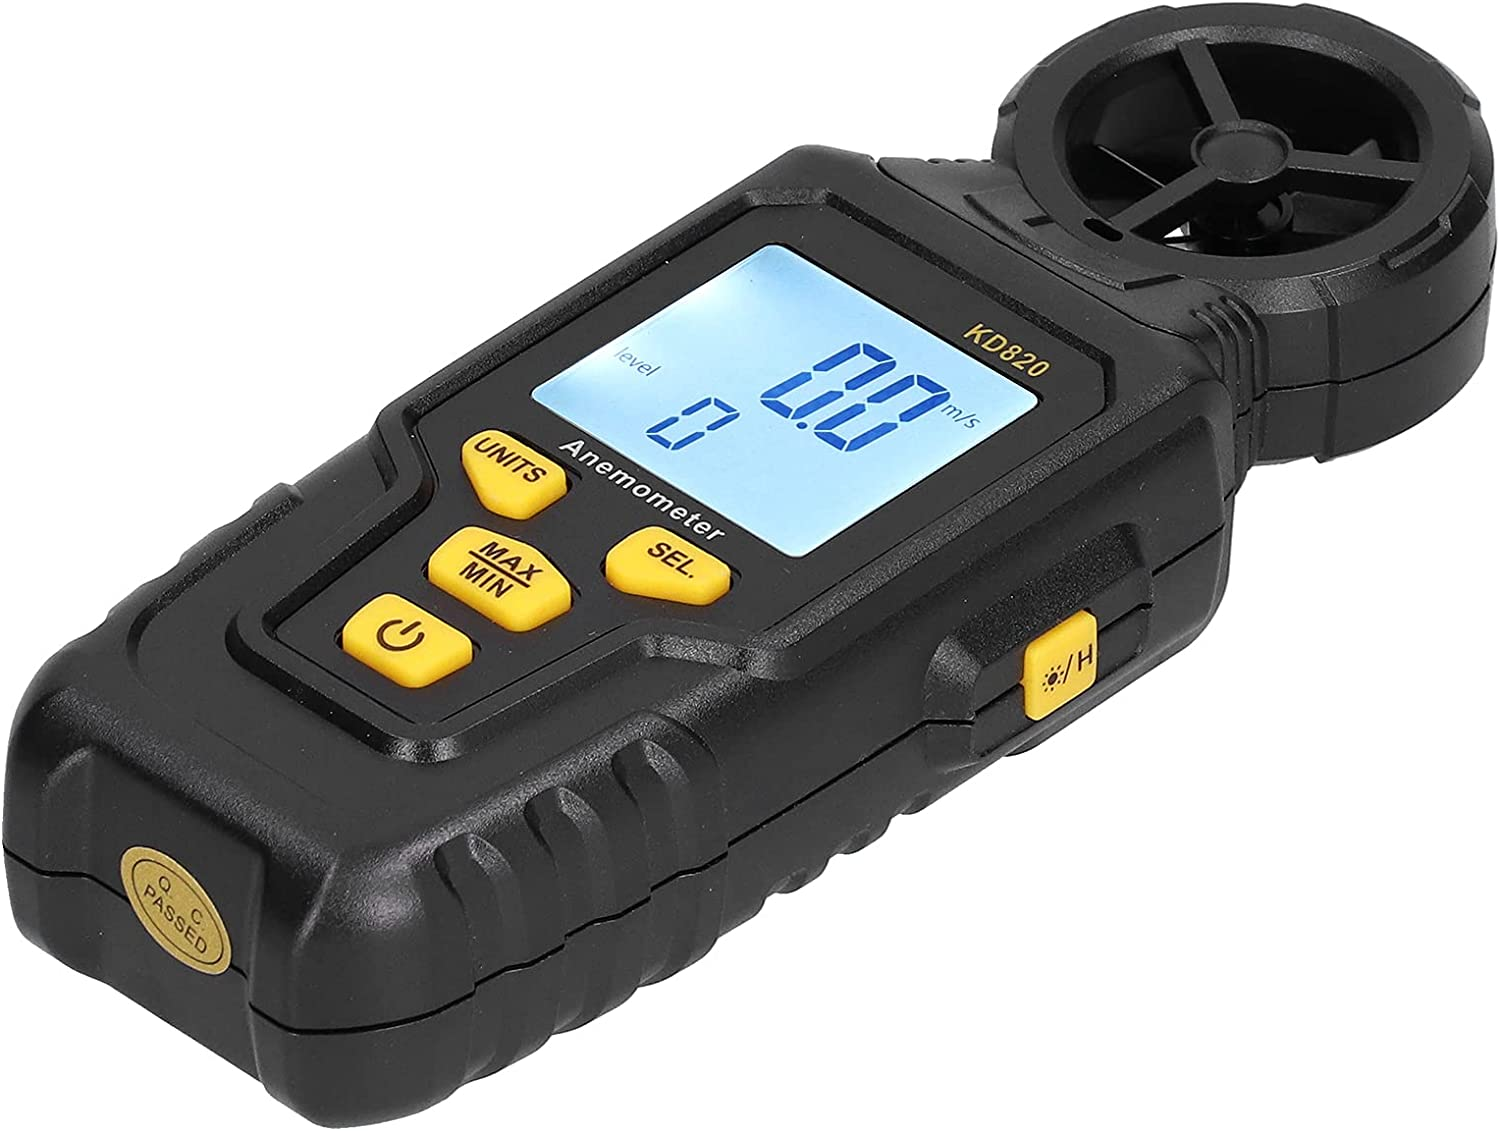 Wind Max 74% OFF Speed Meter Gauge 32℉‑140℉ Handheld Outlet ☆ Free Shipping Anemomet